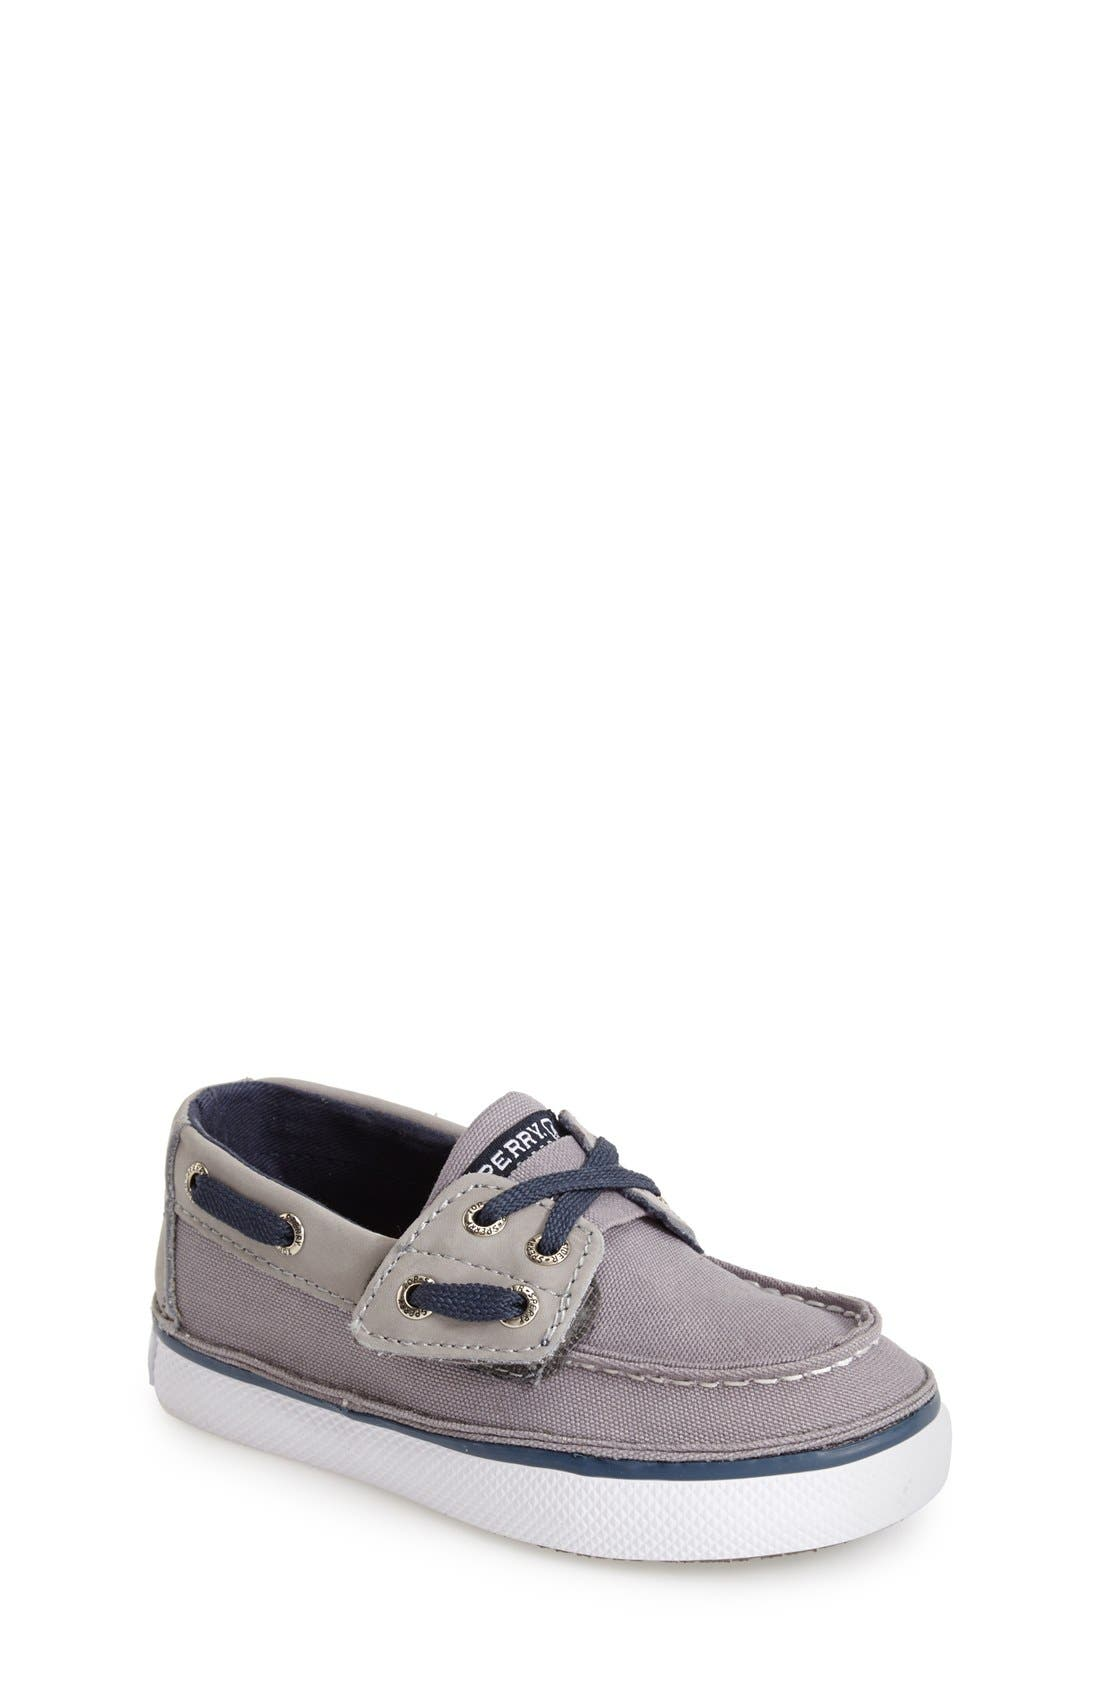 Alternate Image 1 Selected - Sperry Kids 'Cruz Jr.' Slip-On Boat Shoe (Walker & Toddler)